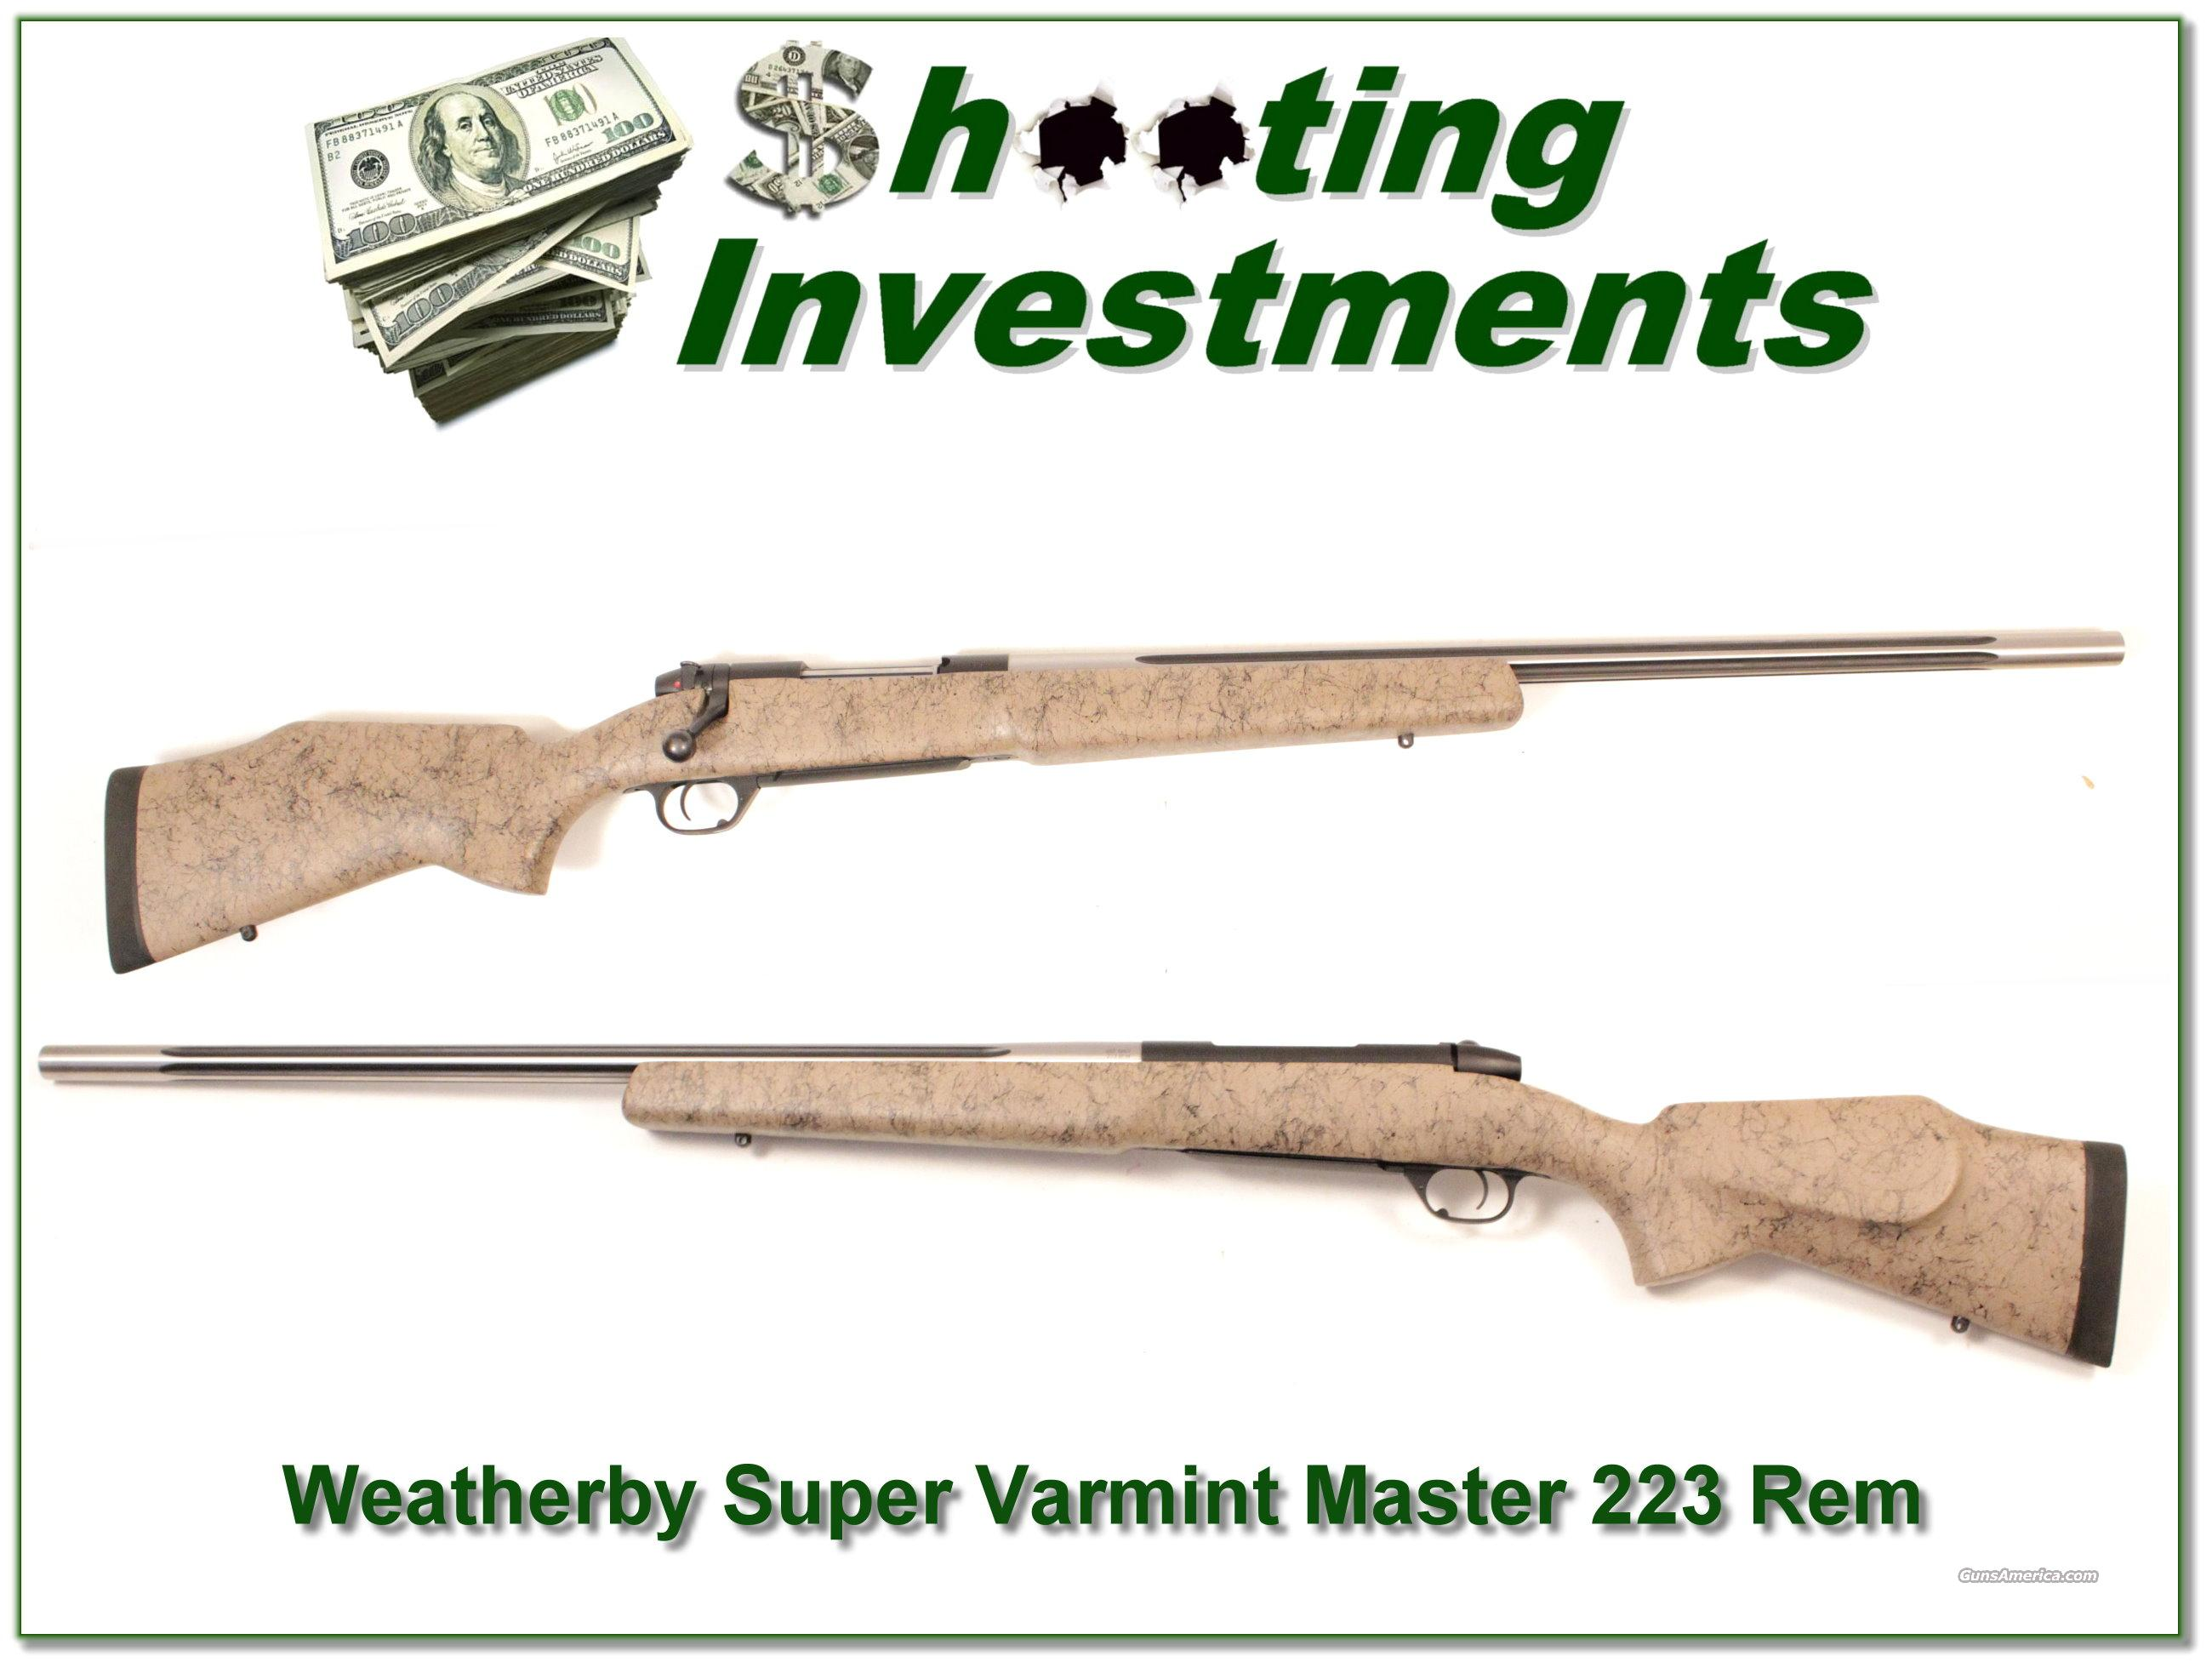 Weatherby Mark V Super Varmintmaster 223 Rem looks new!  Guns > Rifles > Weatherby Rifles > Sporting